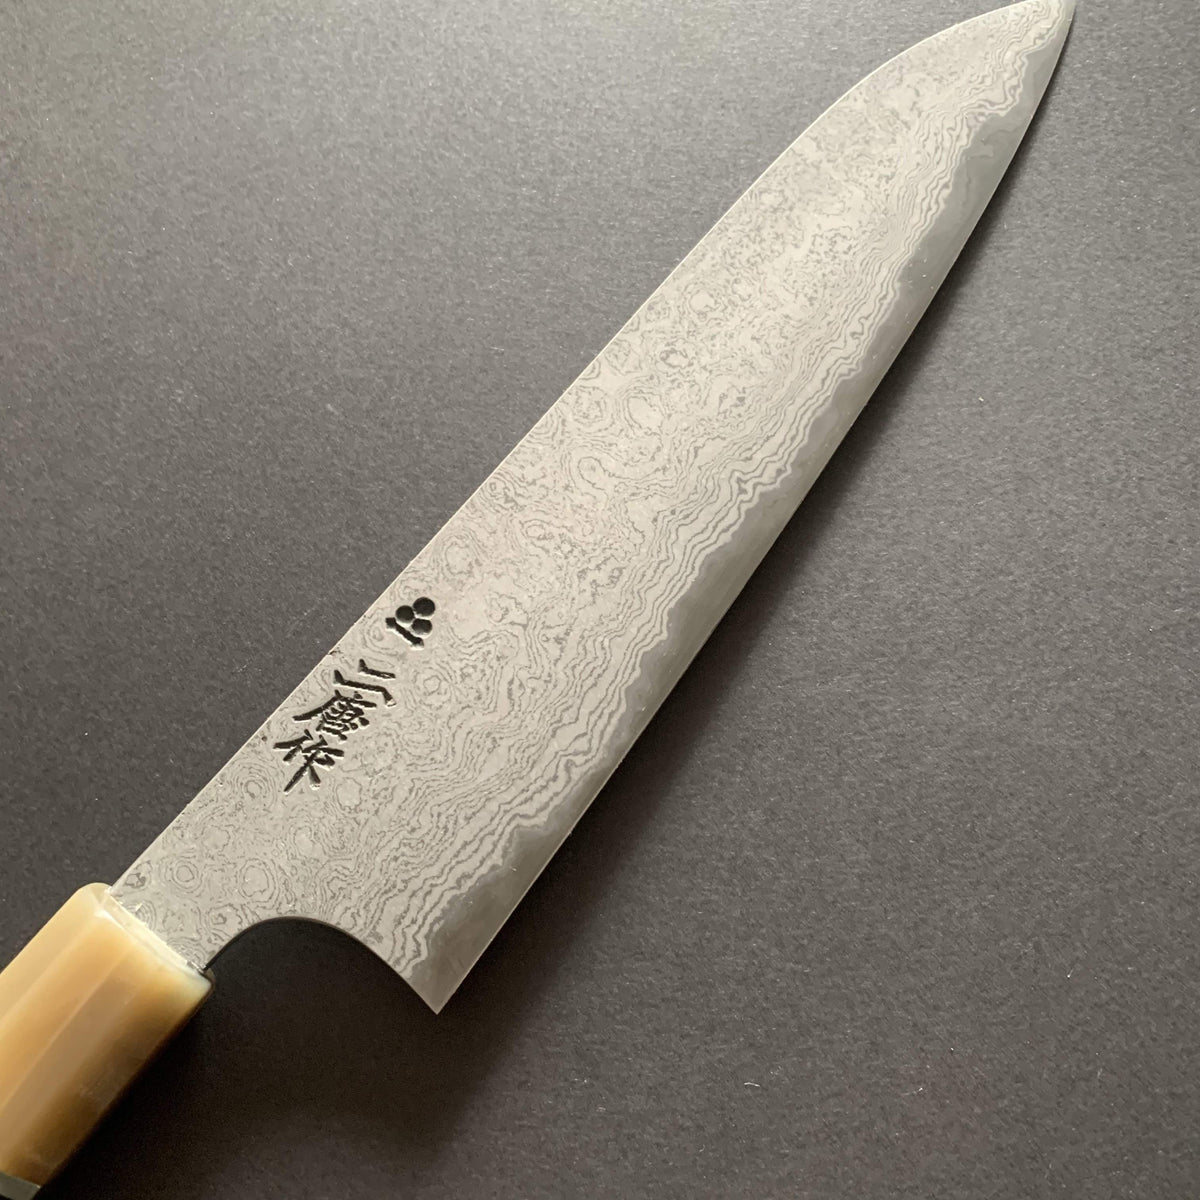 Gyuto knife, SRS13 steel, damascus finish - Nigara